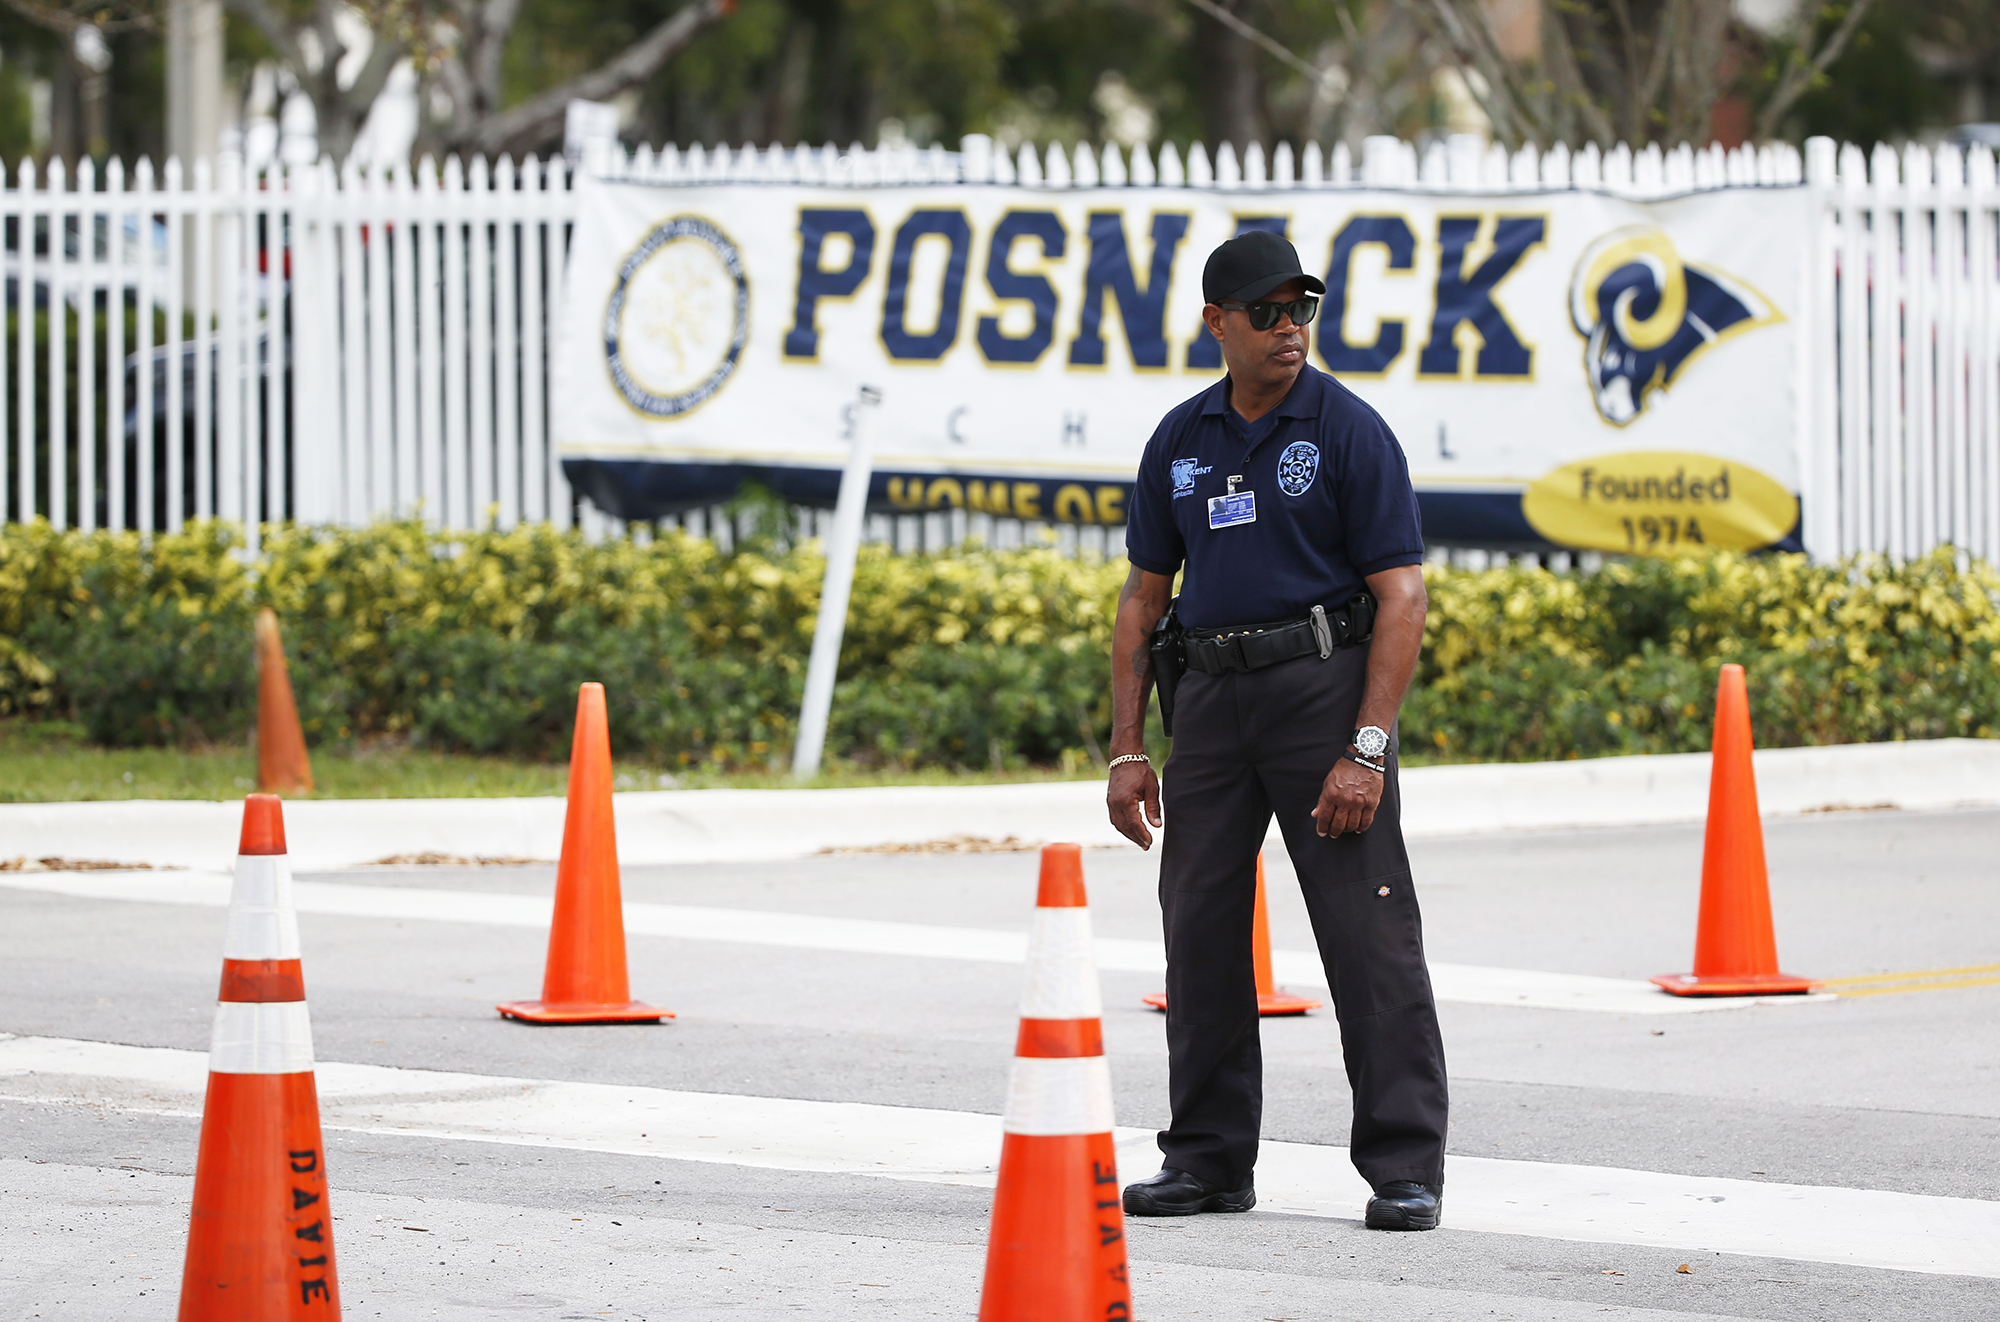 A security guard stands outside the entrance to the David Posnack Jewish Community Center and David Posnack Jewish Day School after people were evacuated because of a bomb threat, on Feb. 27, 2017, in Davie, Fla.